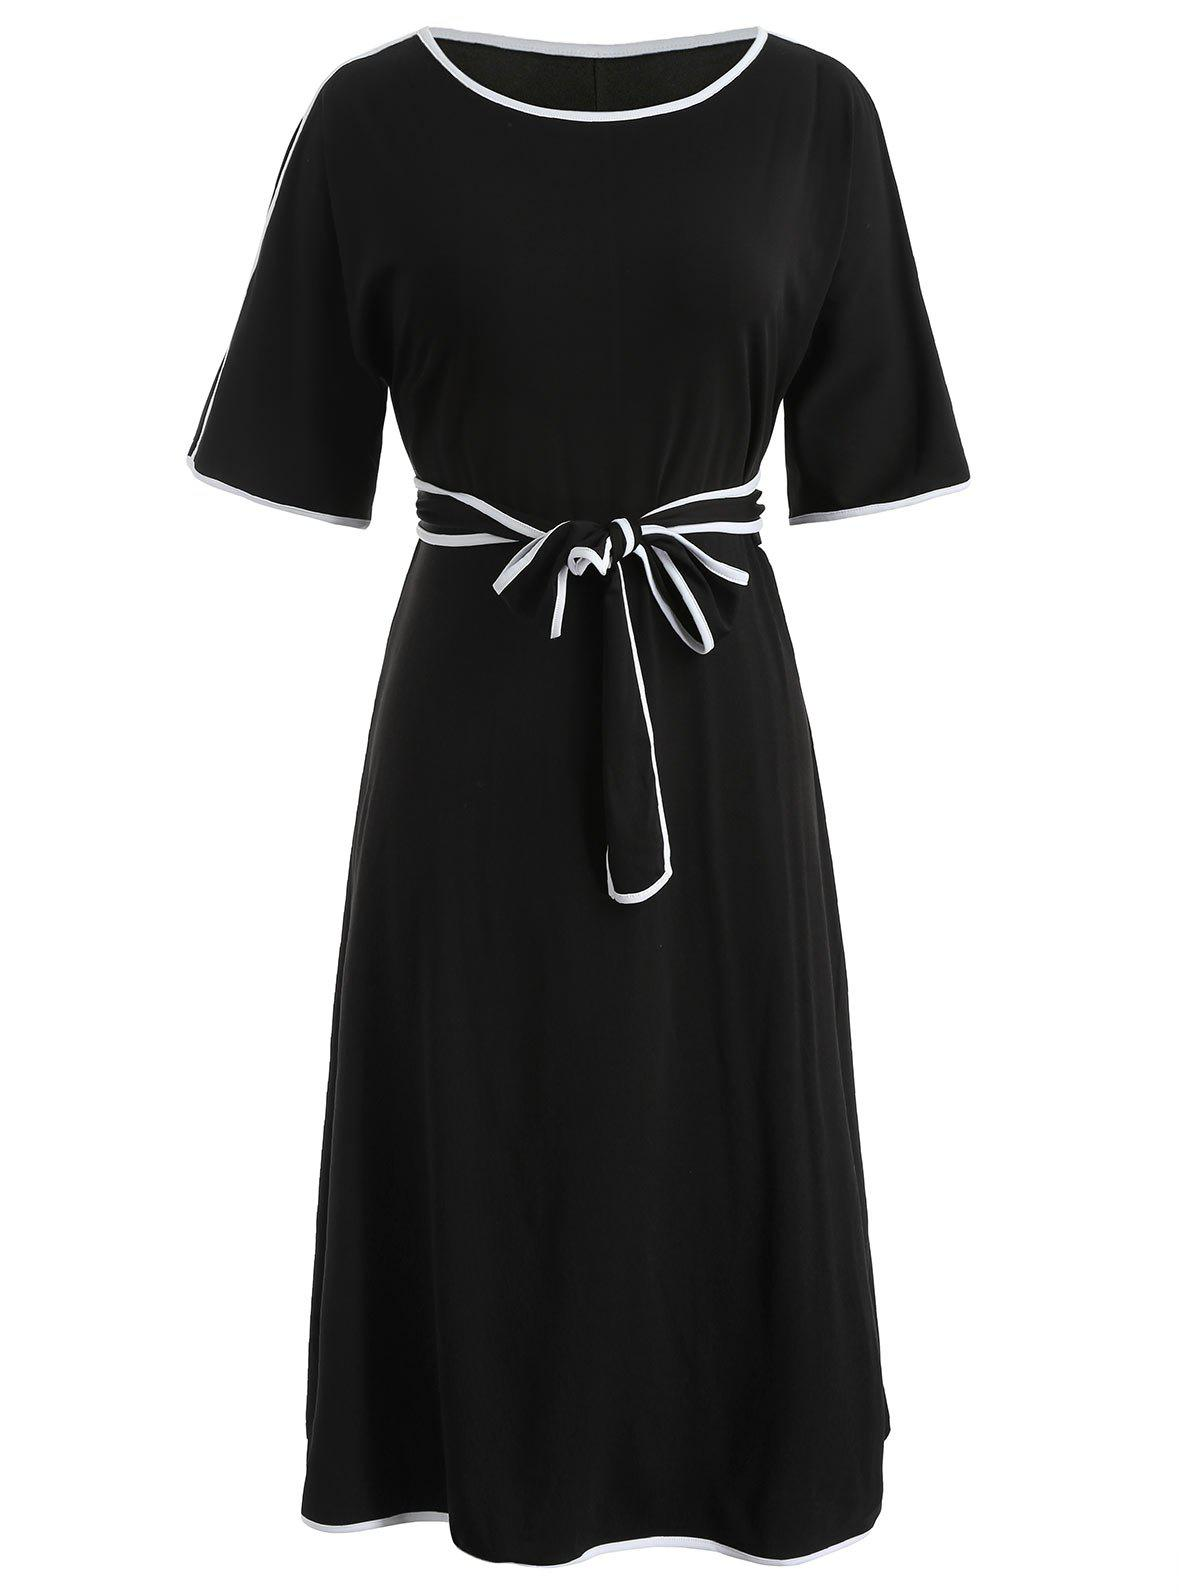 Plus Size Casual Belted Dress - BLACK 5X